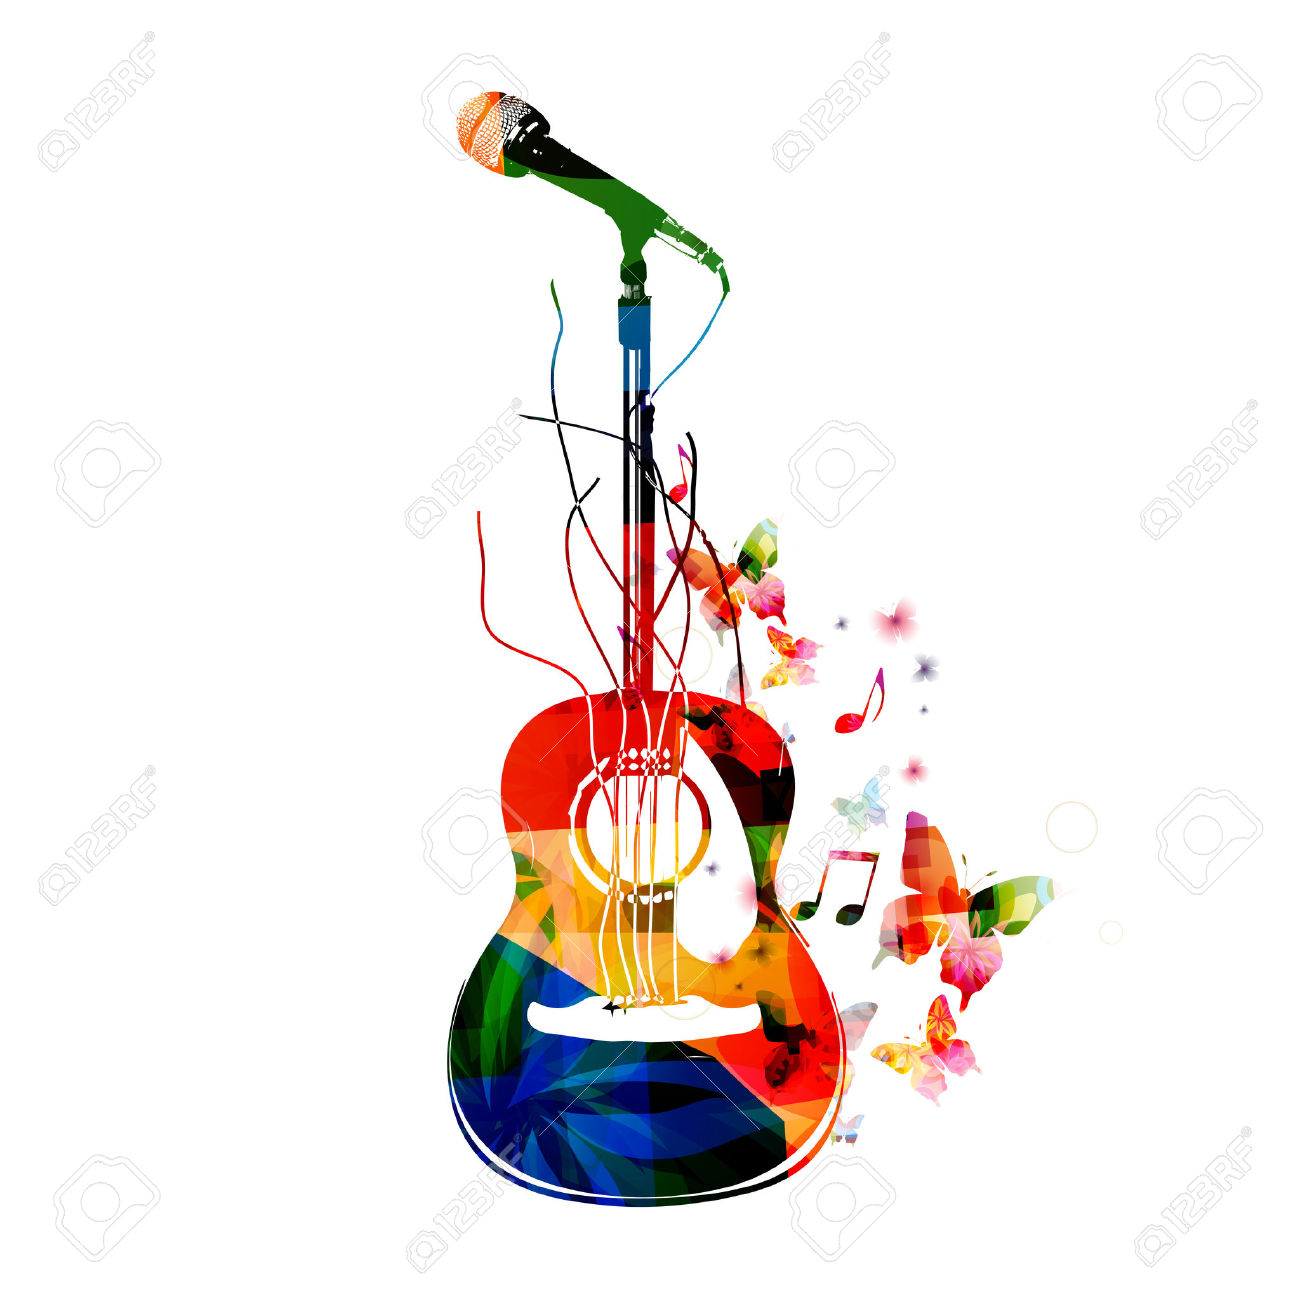 39562117-Colorful-guitar-background-Stock-Vector-guitar-music-musical